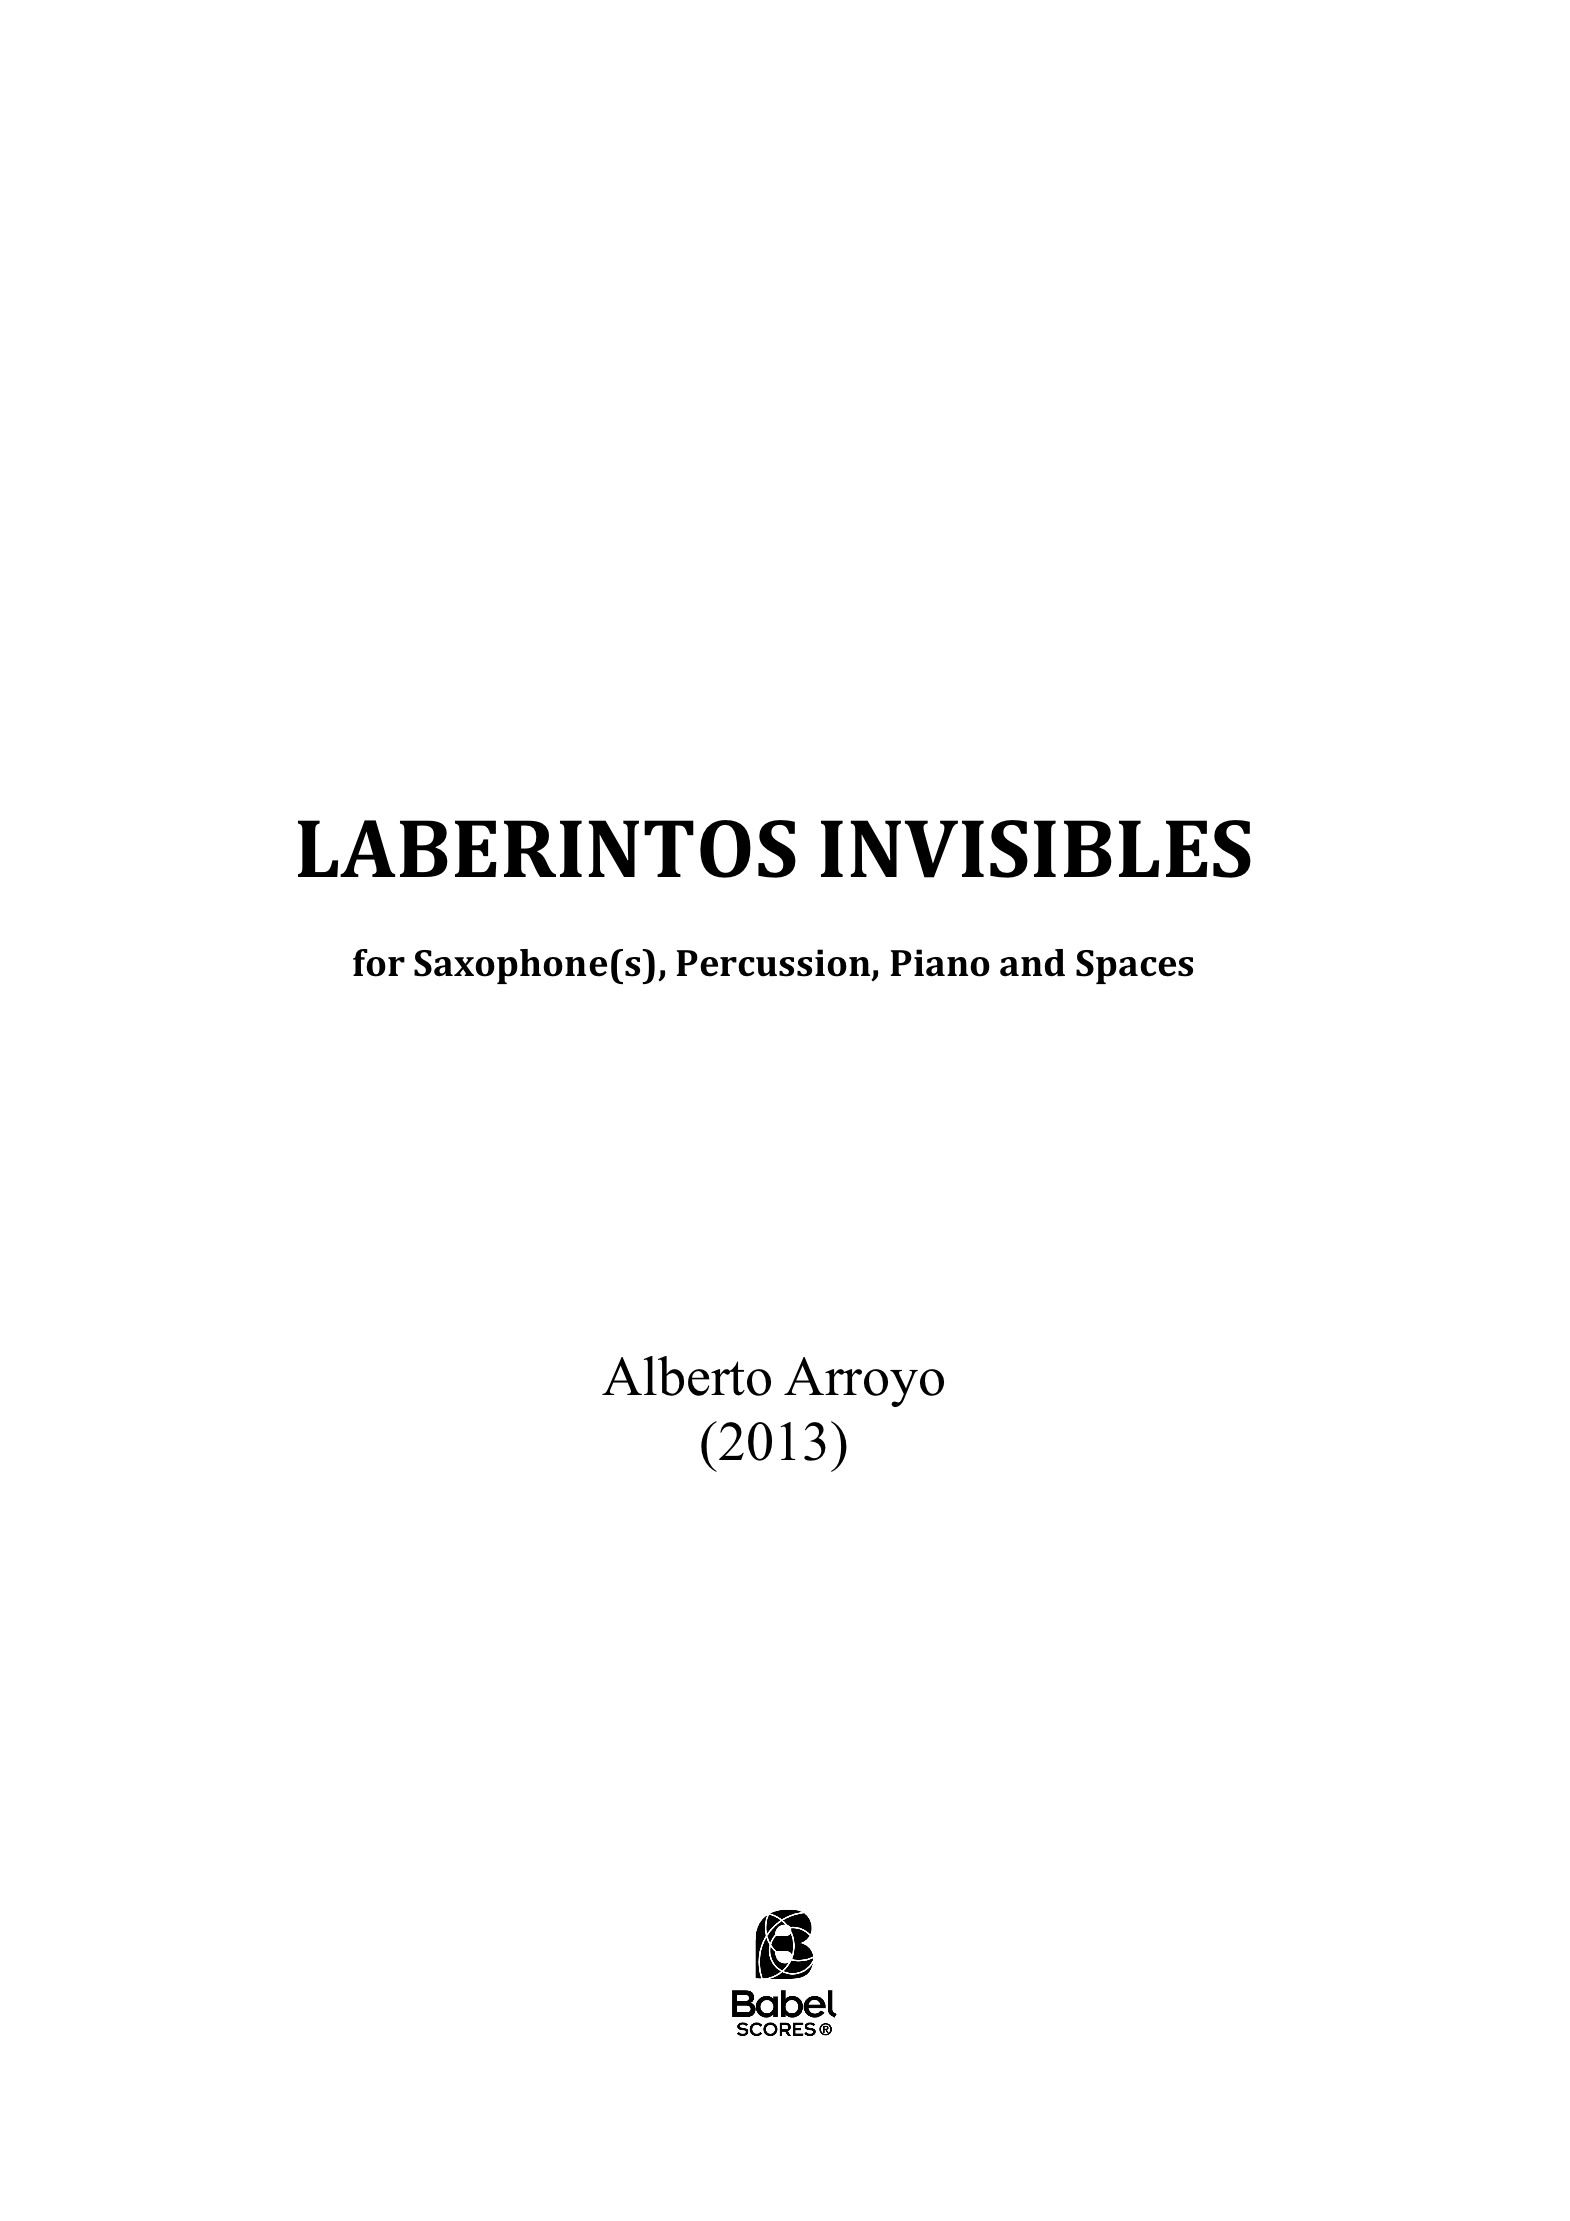 Laberintos invisibles A4 z